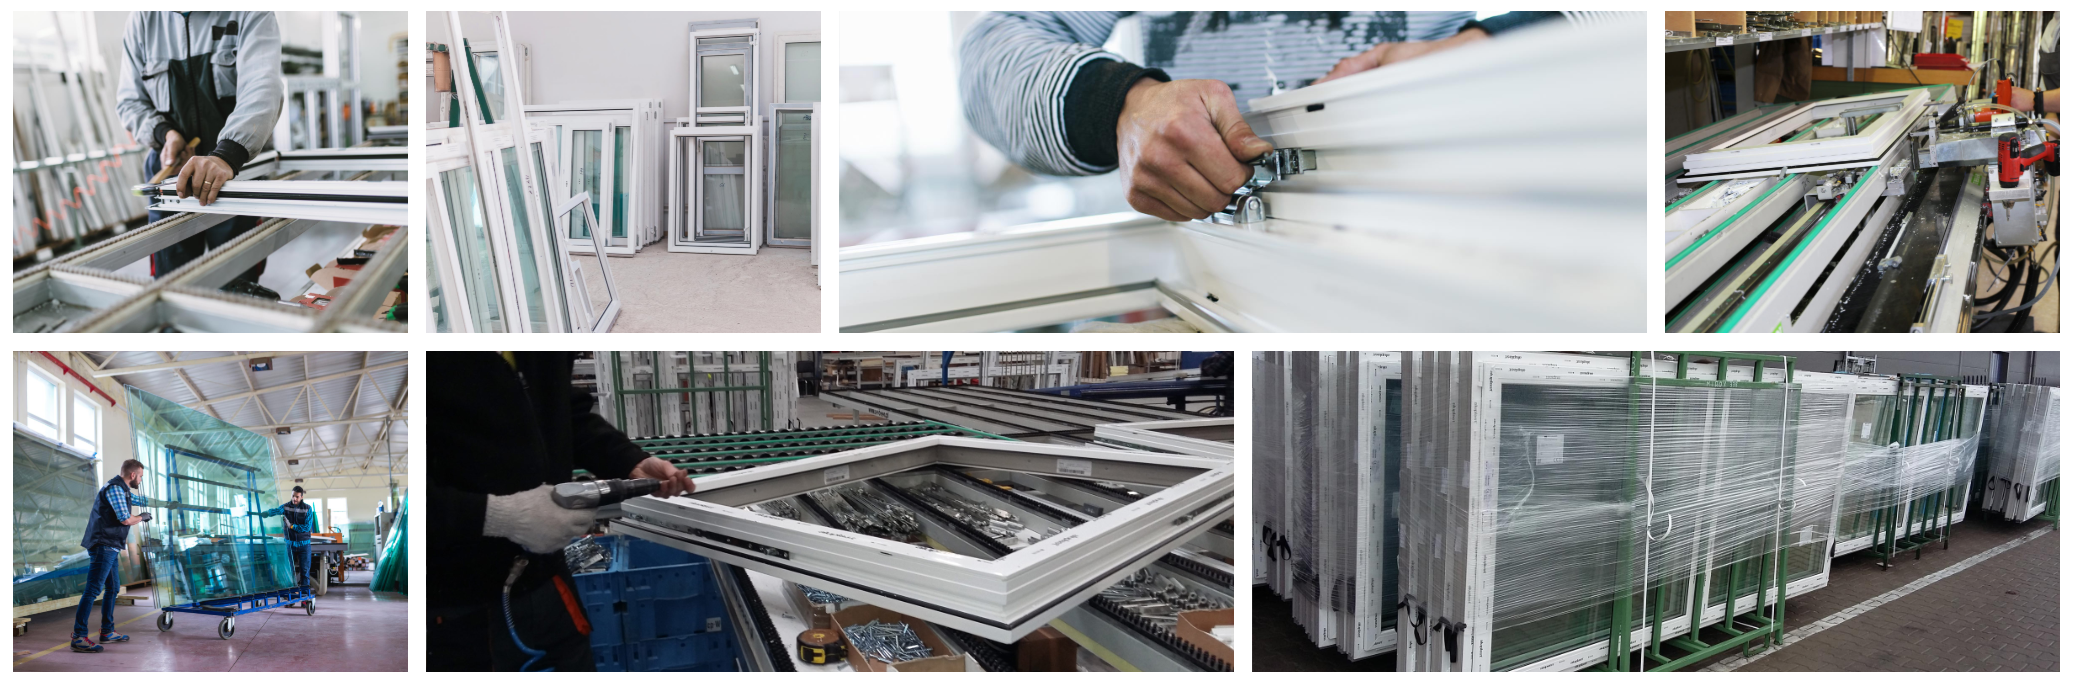 produktion fensterglas